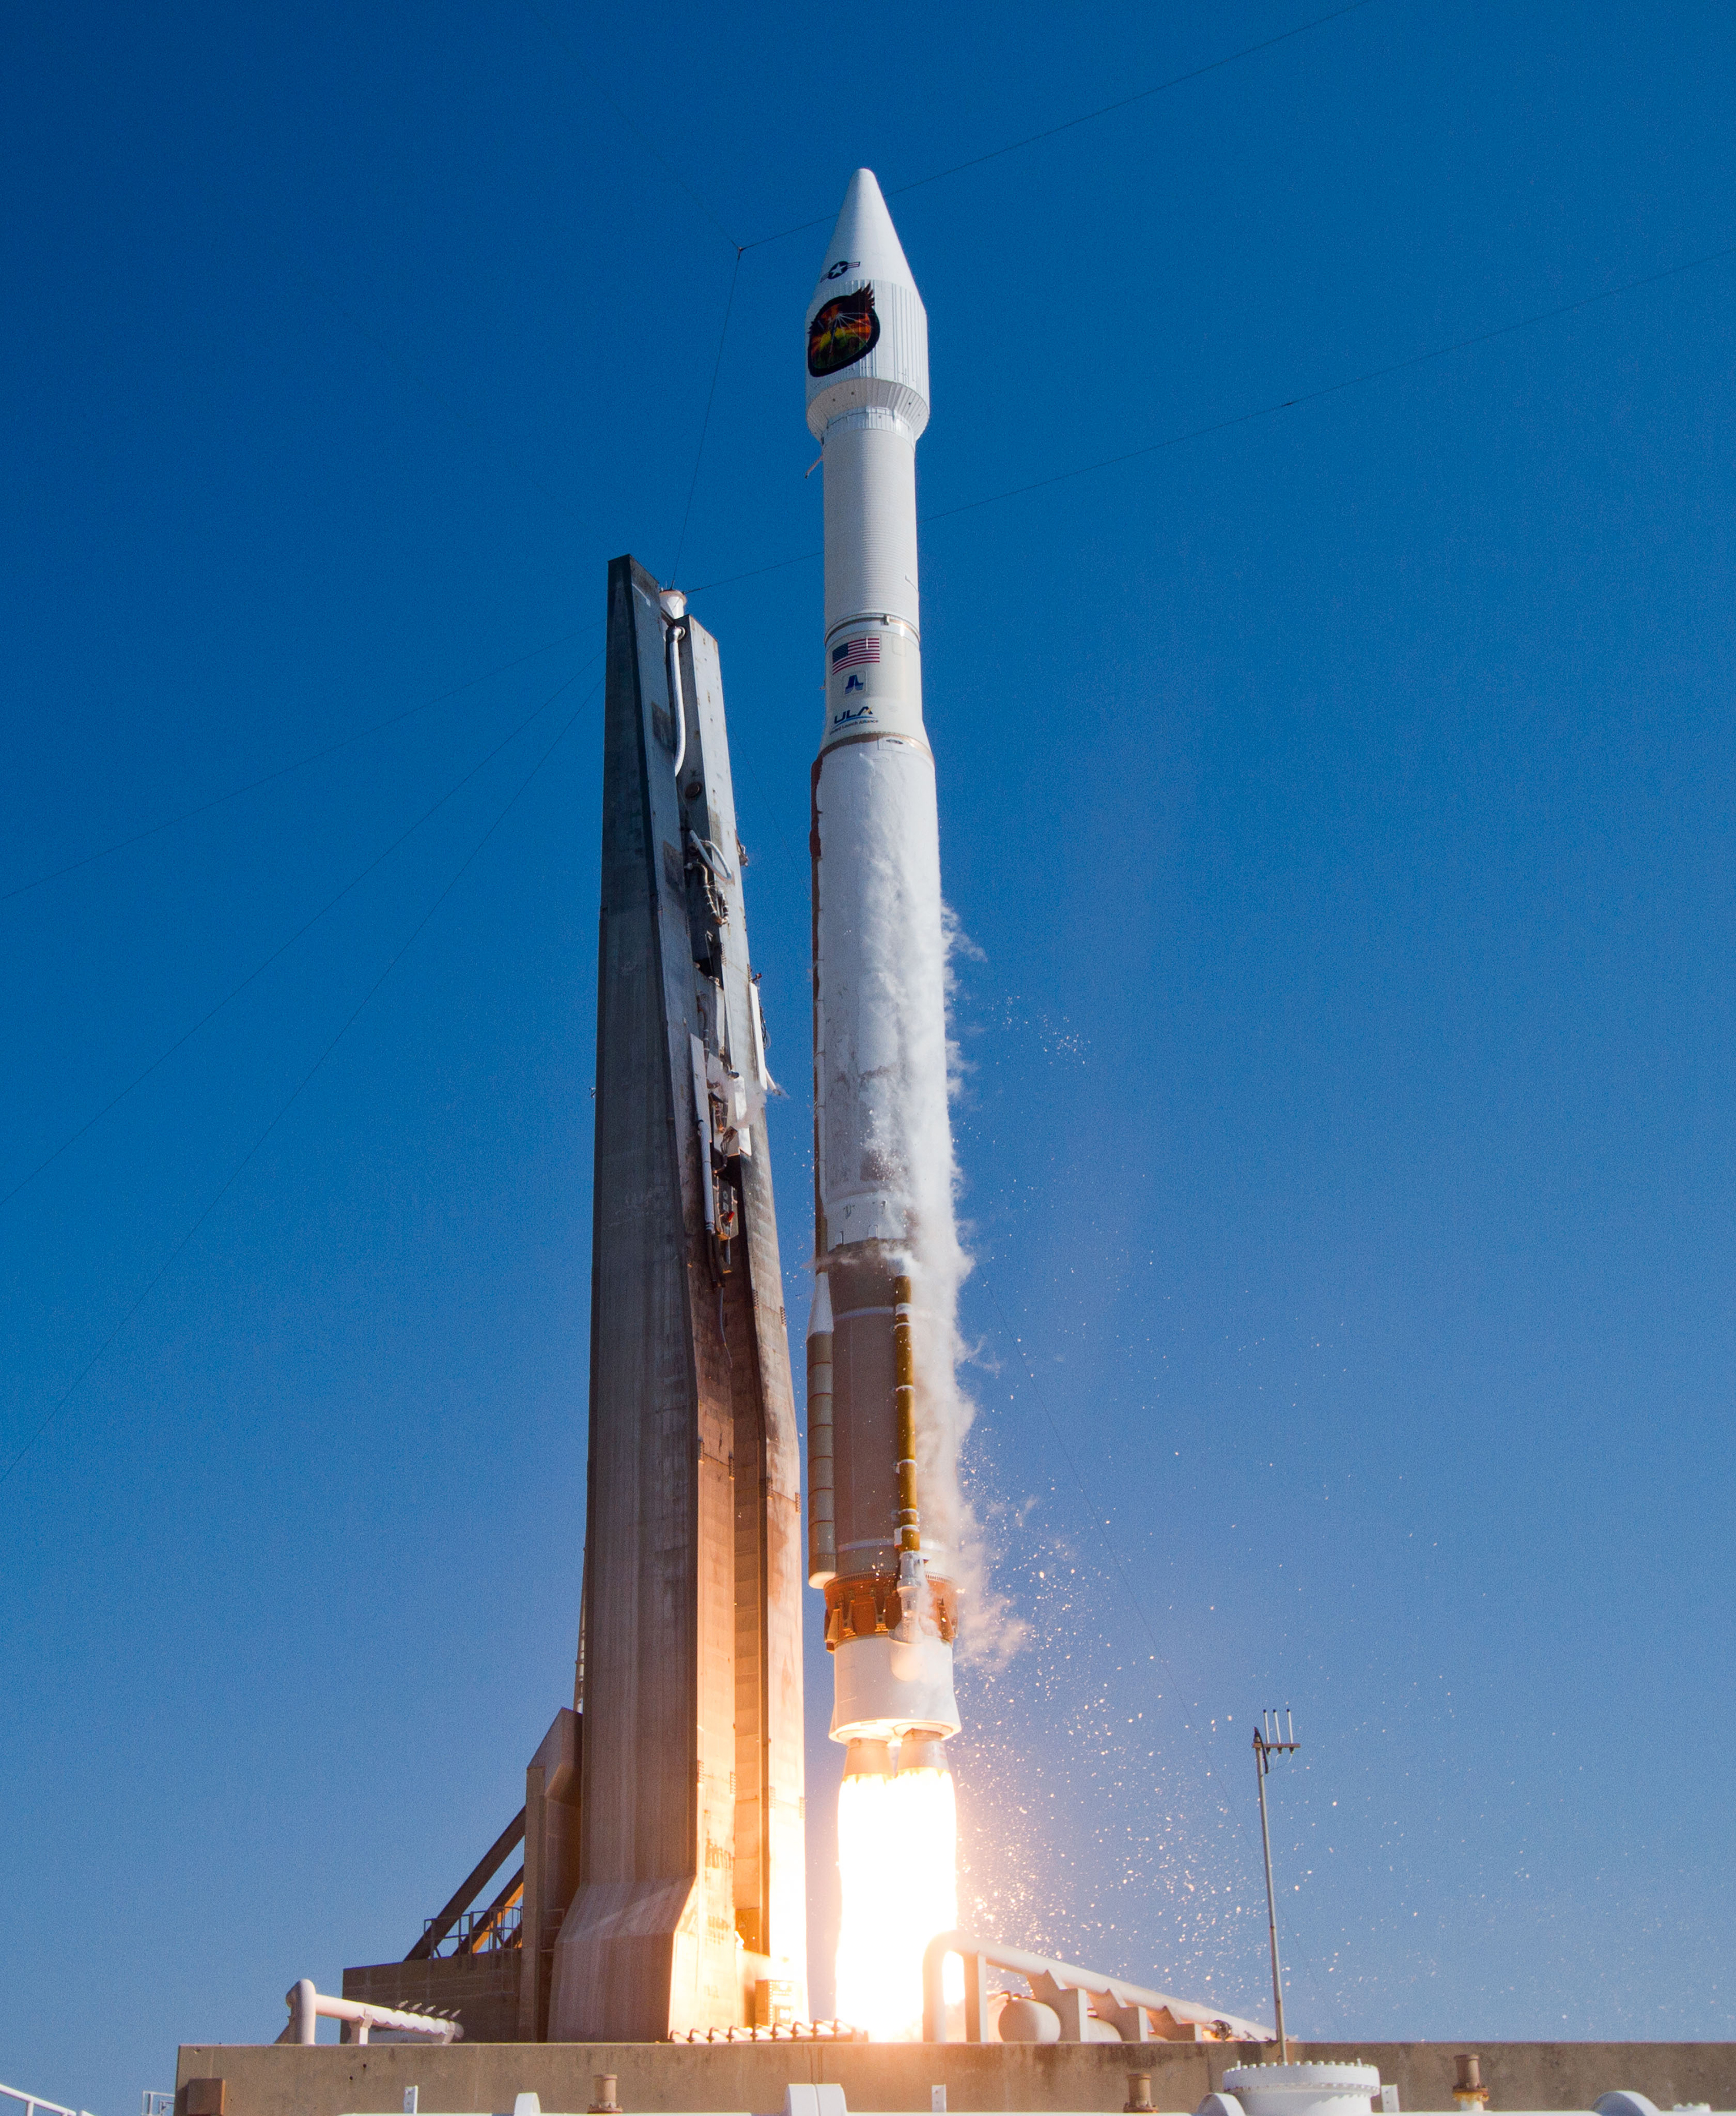 Launch of Atlas V NROL-33, Cape Canaveral Air Force Station. May